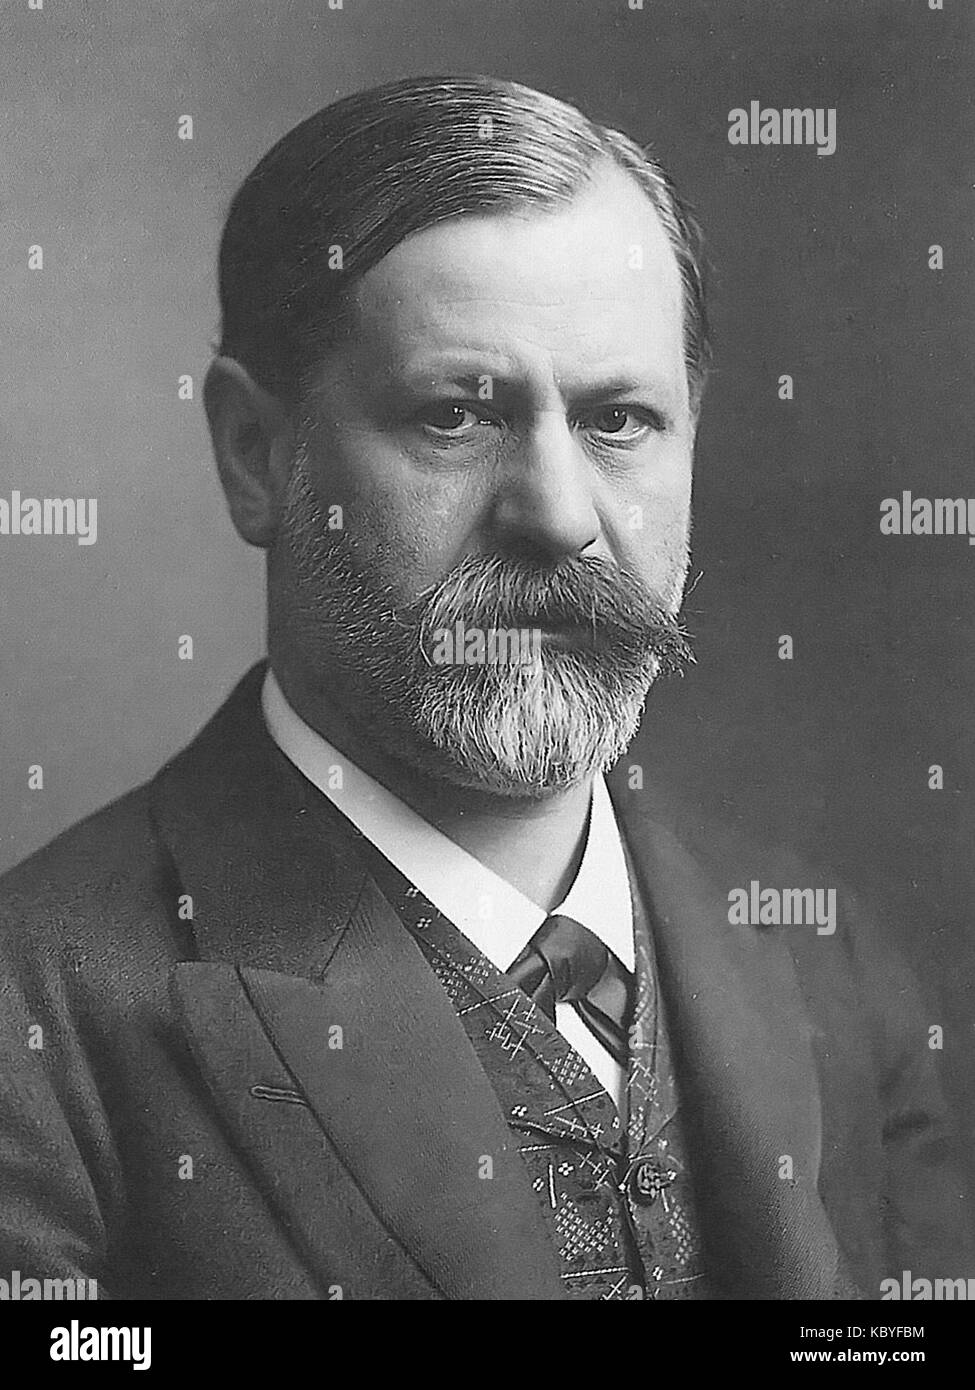 Sigmund freud um 1905 Stock Photo